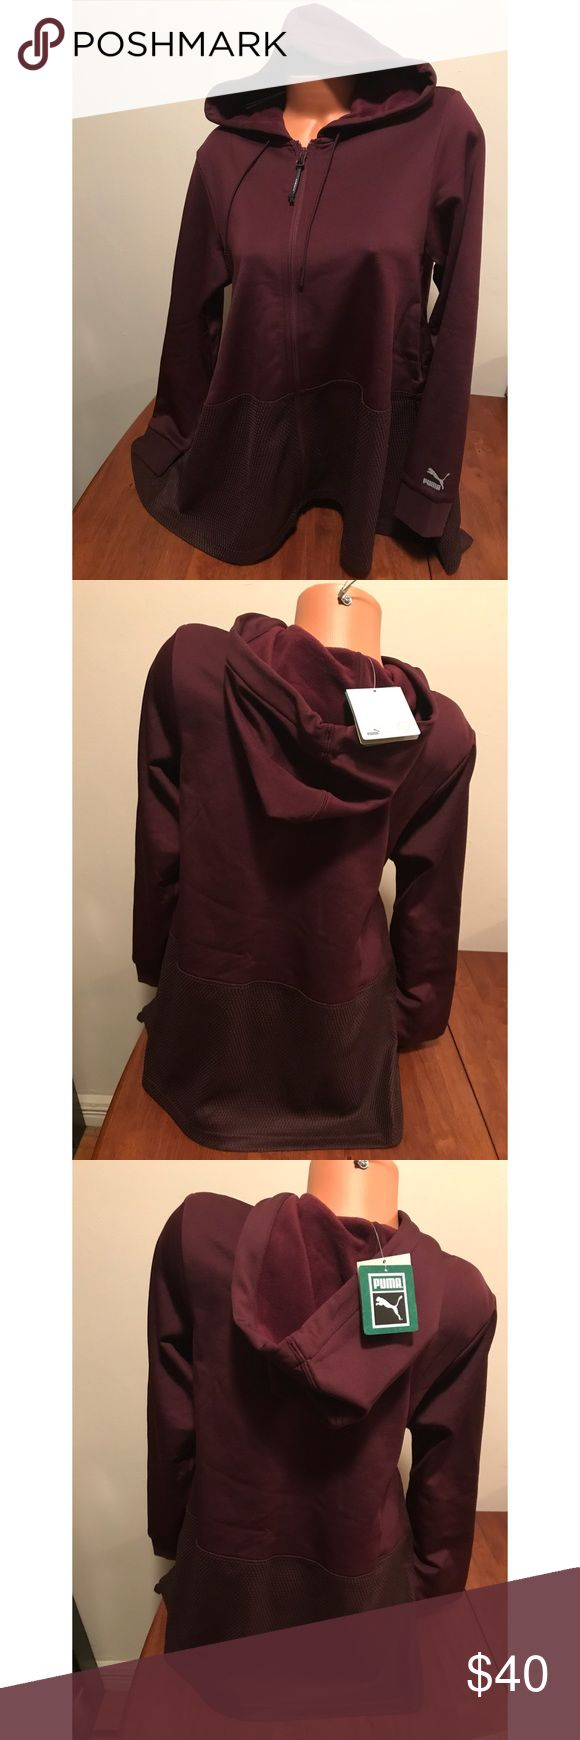 Puma Drapy Hoody Brand New with Tags - Ladies Puma Drapy Fullzip Hoody with Pockets  Color: Winetasting-Copper Size: M 🌷If interested please submit an offer, I will either accept or counter with my lowest🌷Happy Holidays 📦Ships Same Day before 12noon Puma Tops Sweatshirts & Hoodies